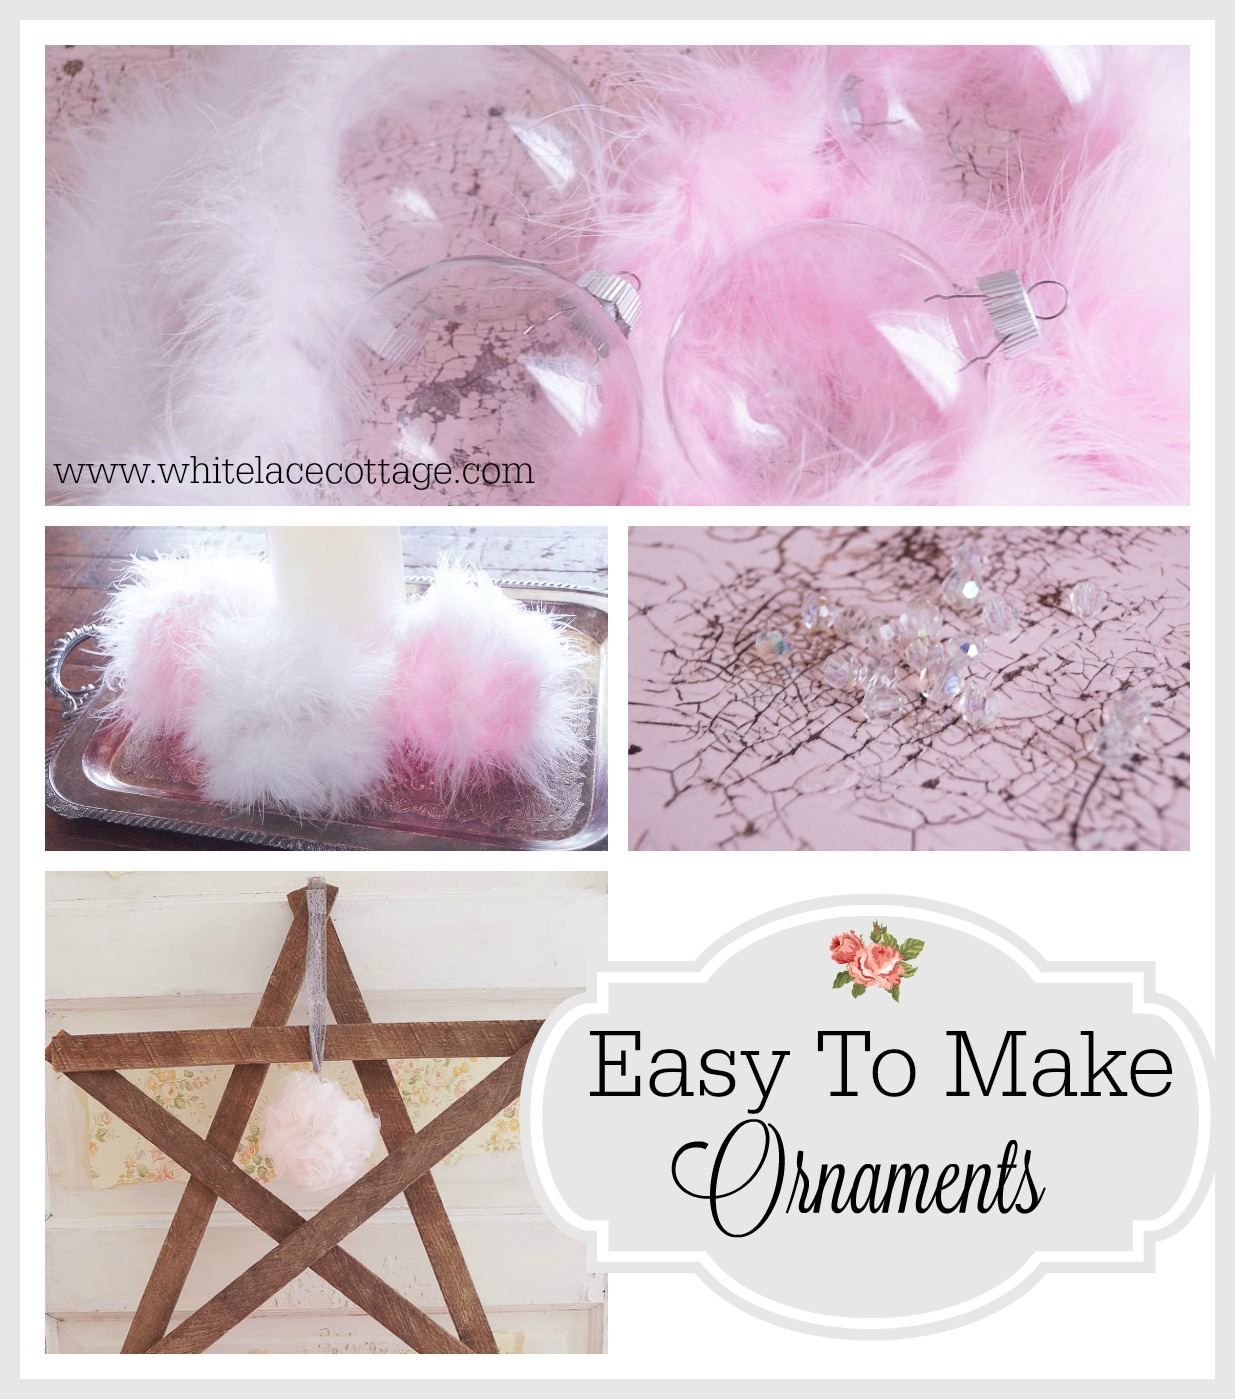 Easy To Make Ornaments www.whitelacecottage.com